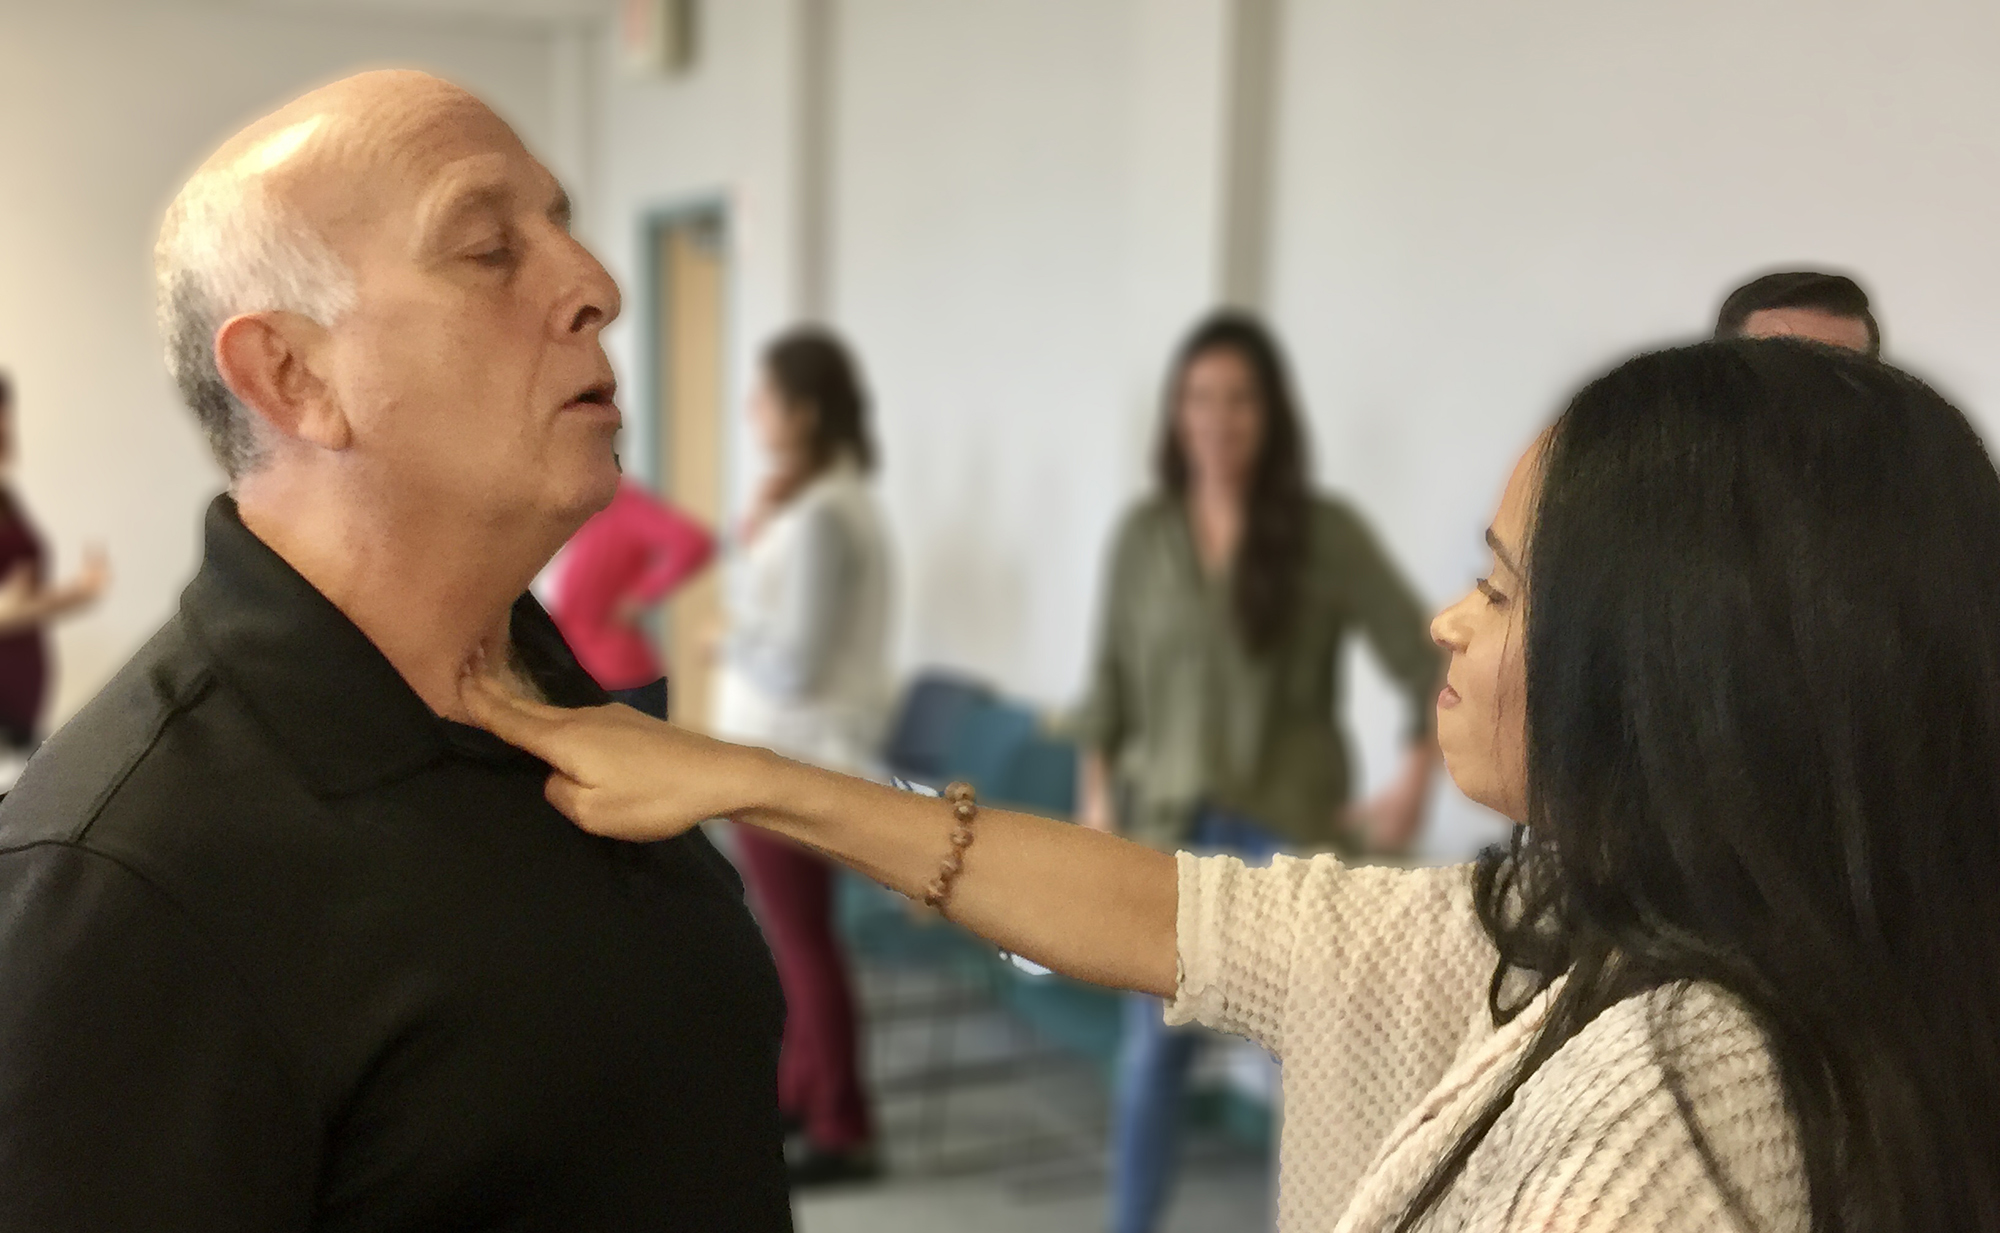 Wellness Fairs offer associates the chance to participate in blood pressure screenings, skin checks, massages, and self-defense training